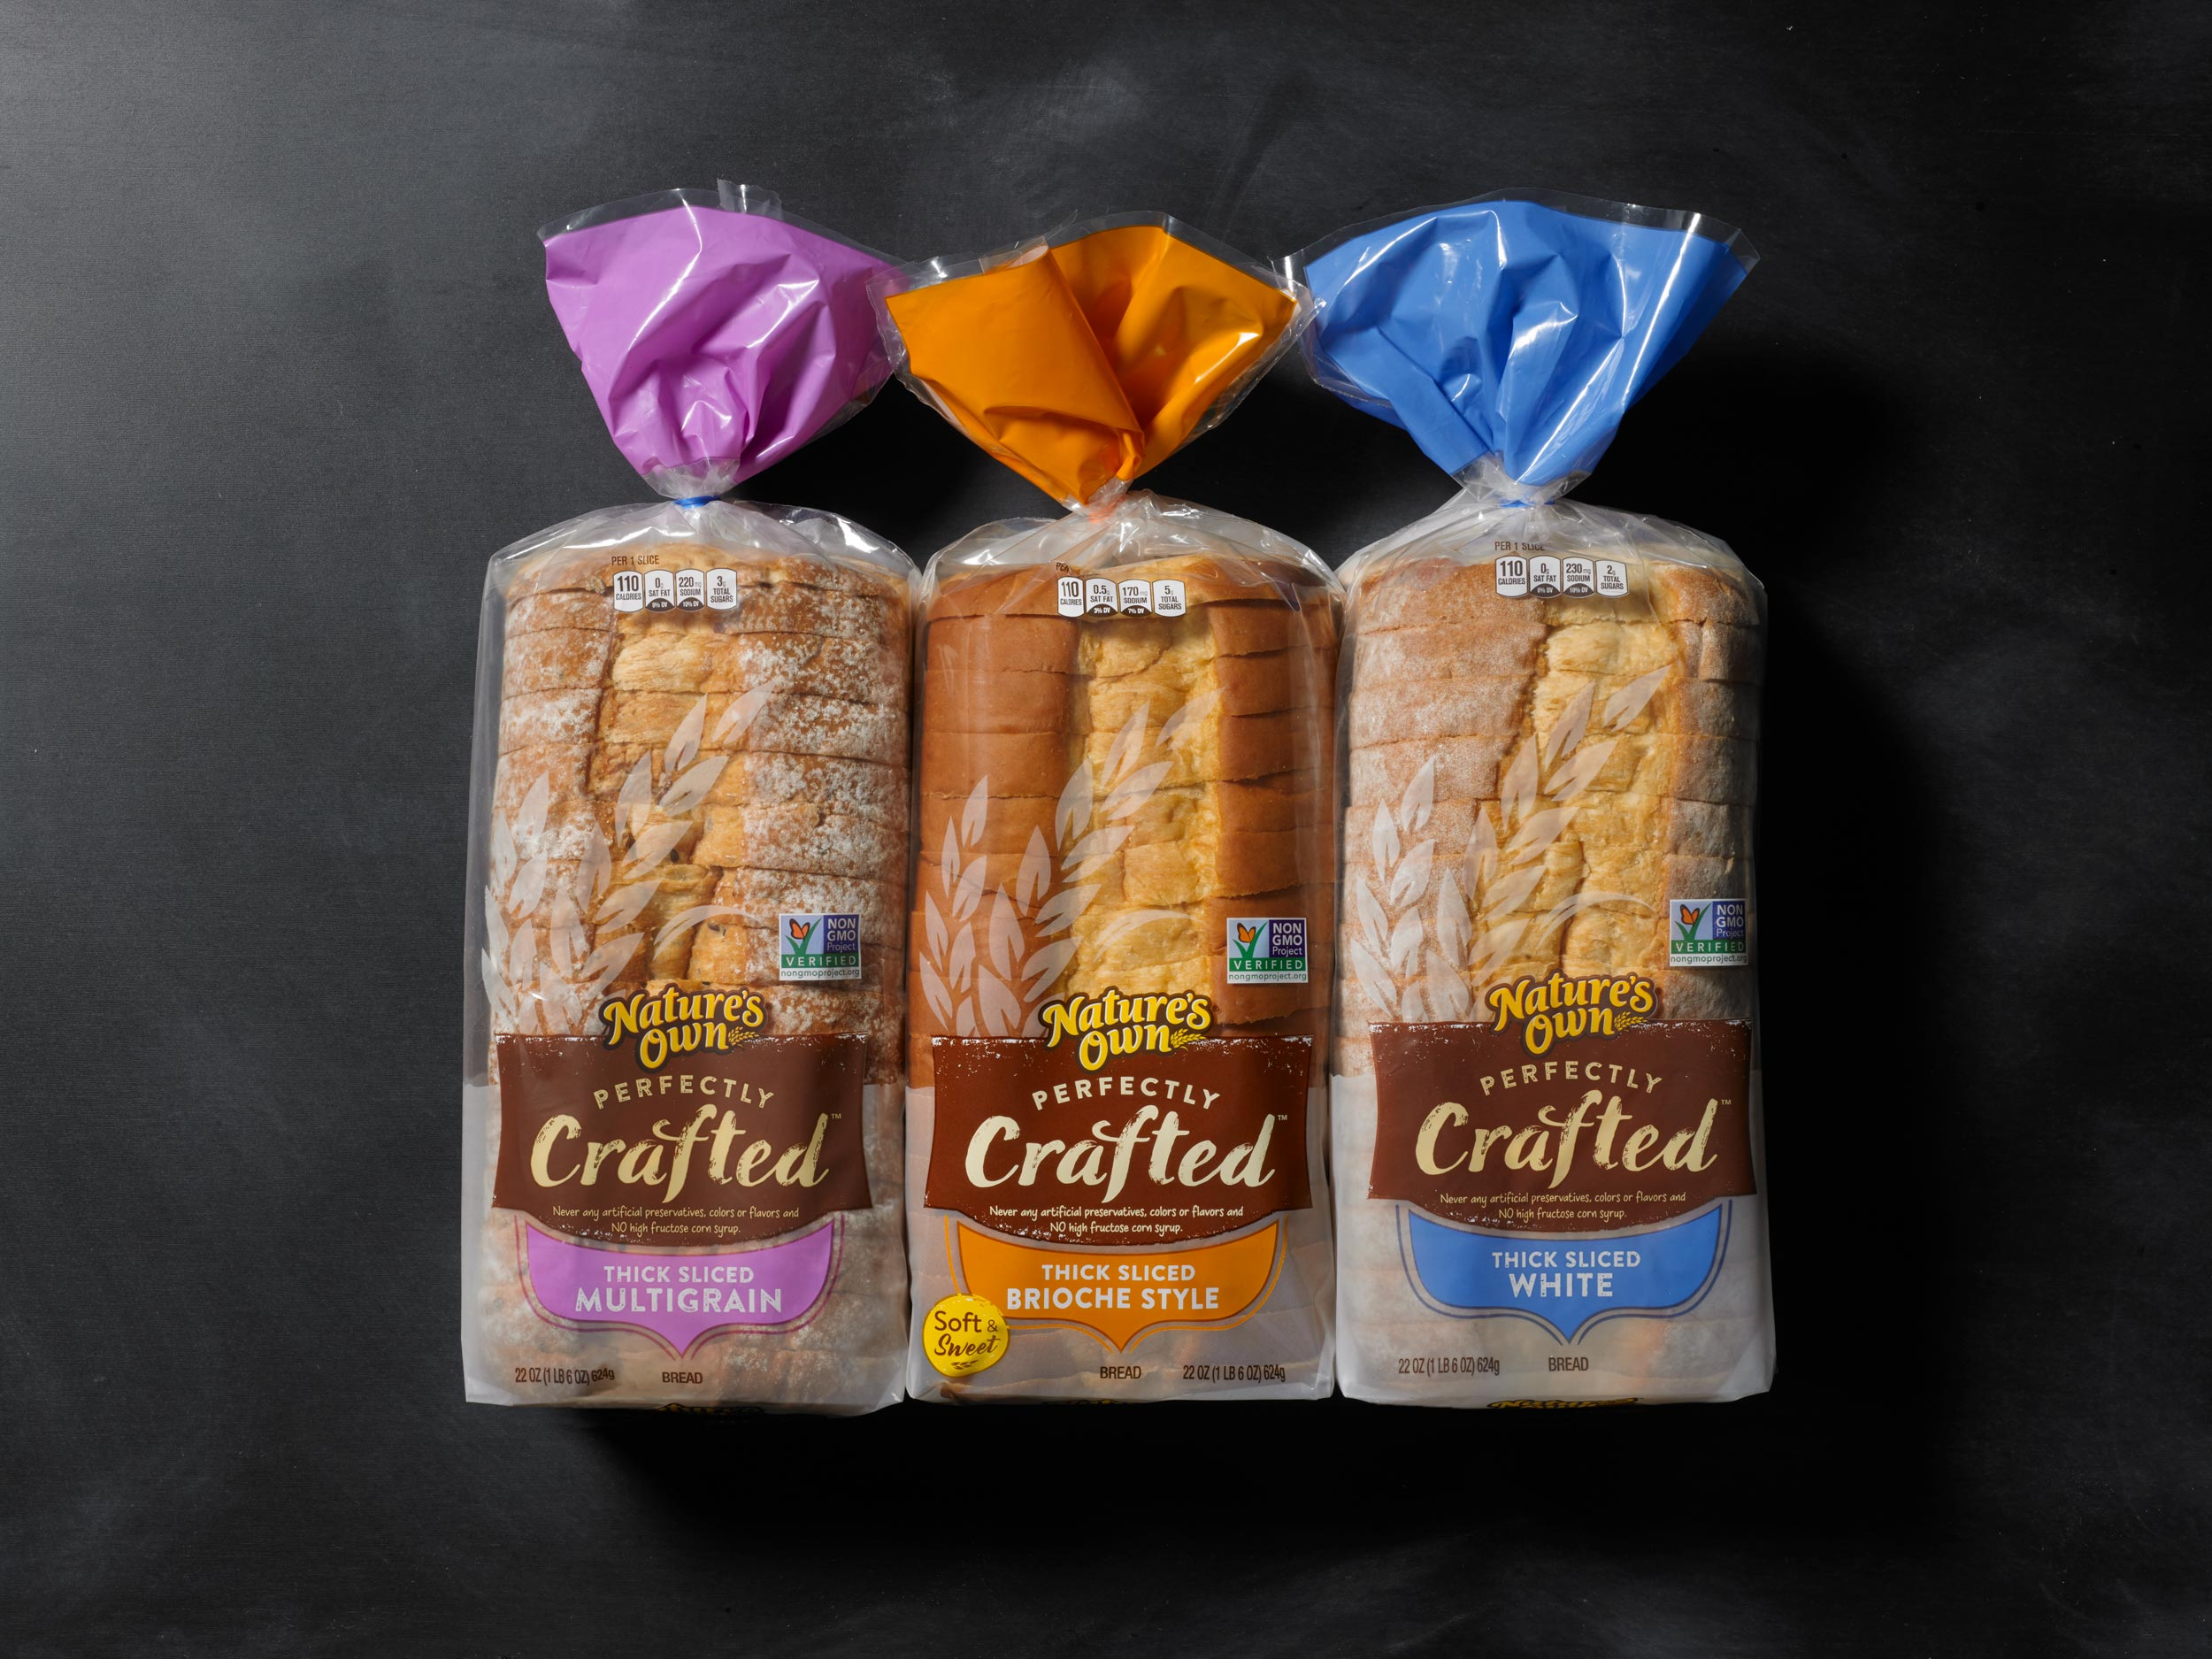 Perfectly Crafted Bread - With Bakery Style soft, thick cut slices